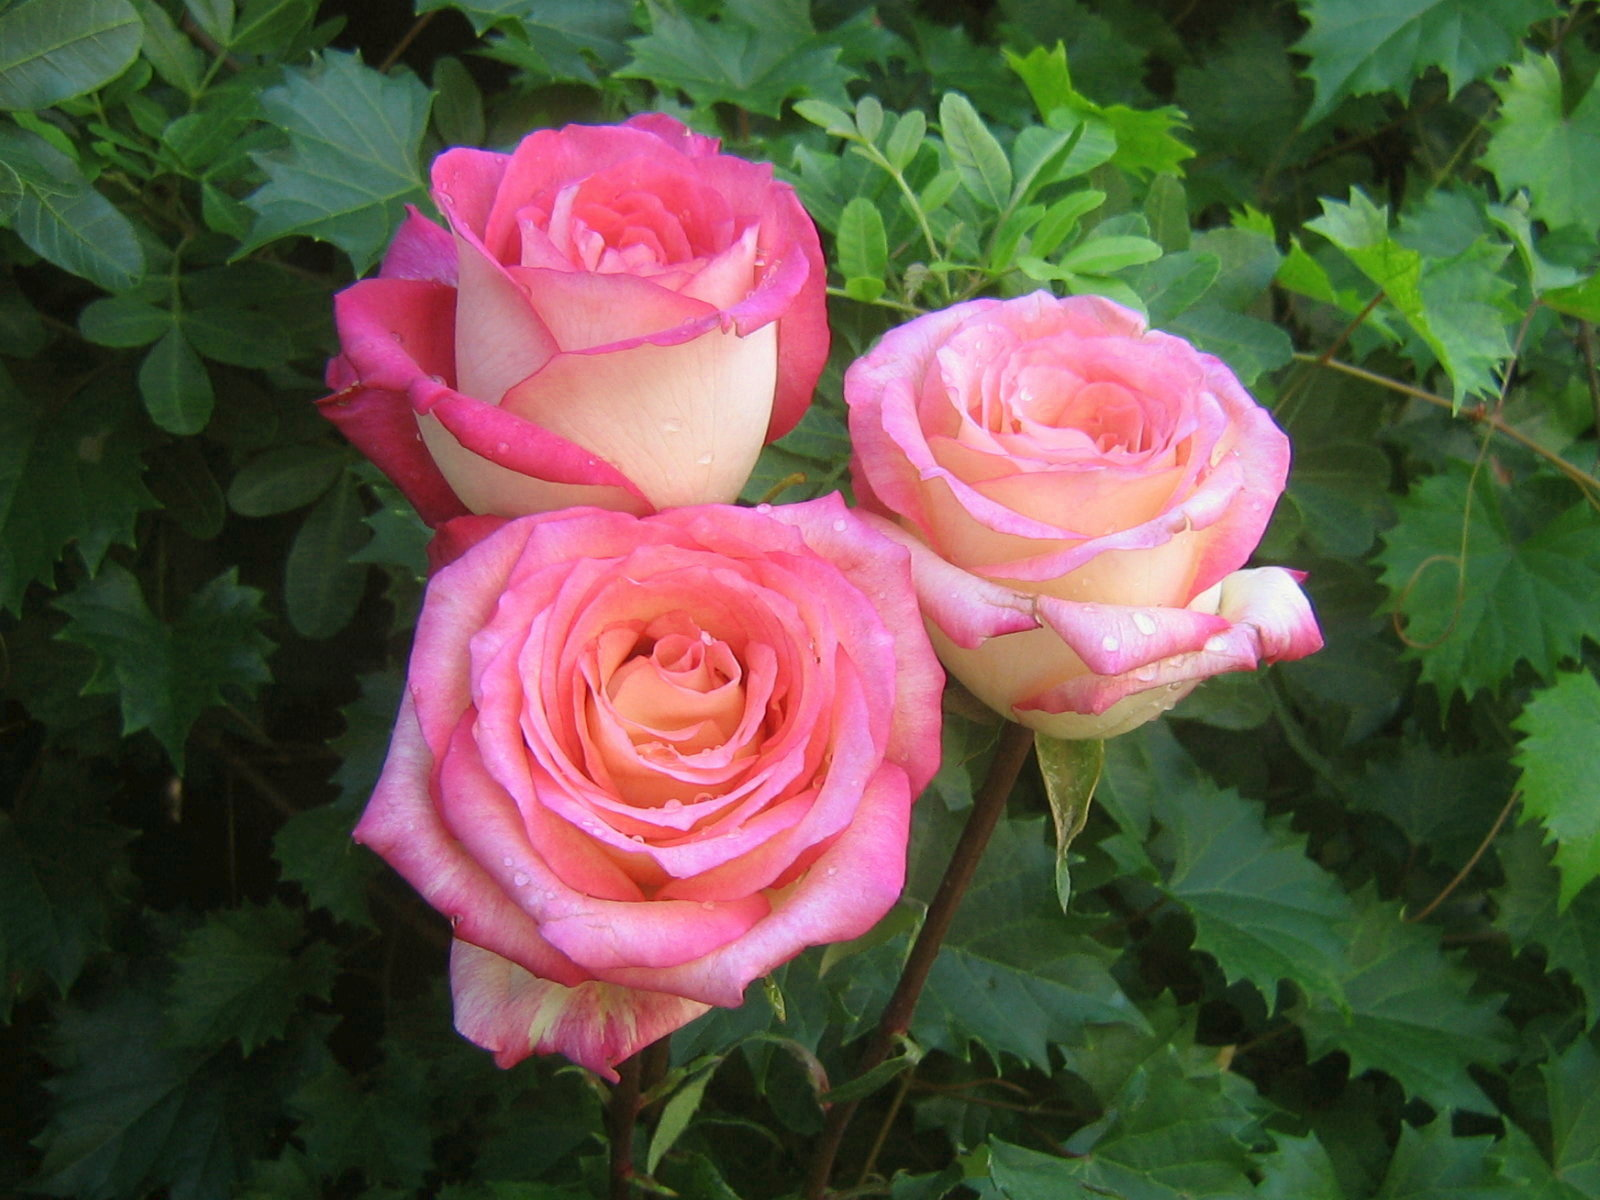 pink rose in - photo #45